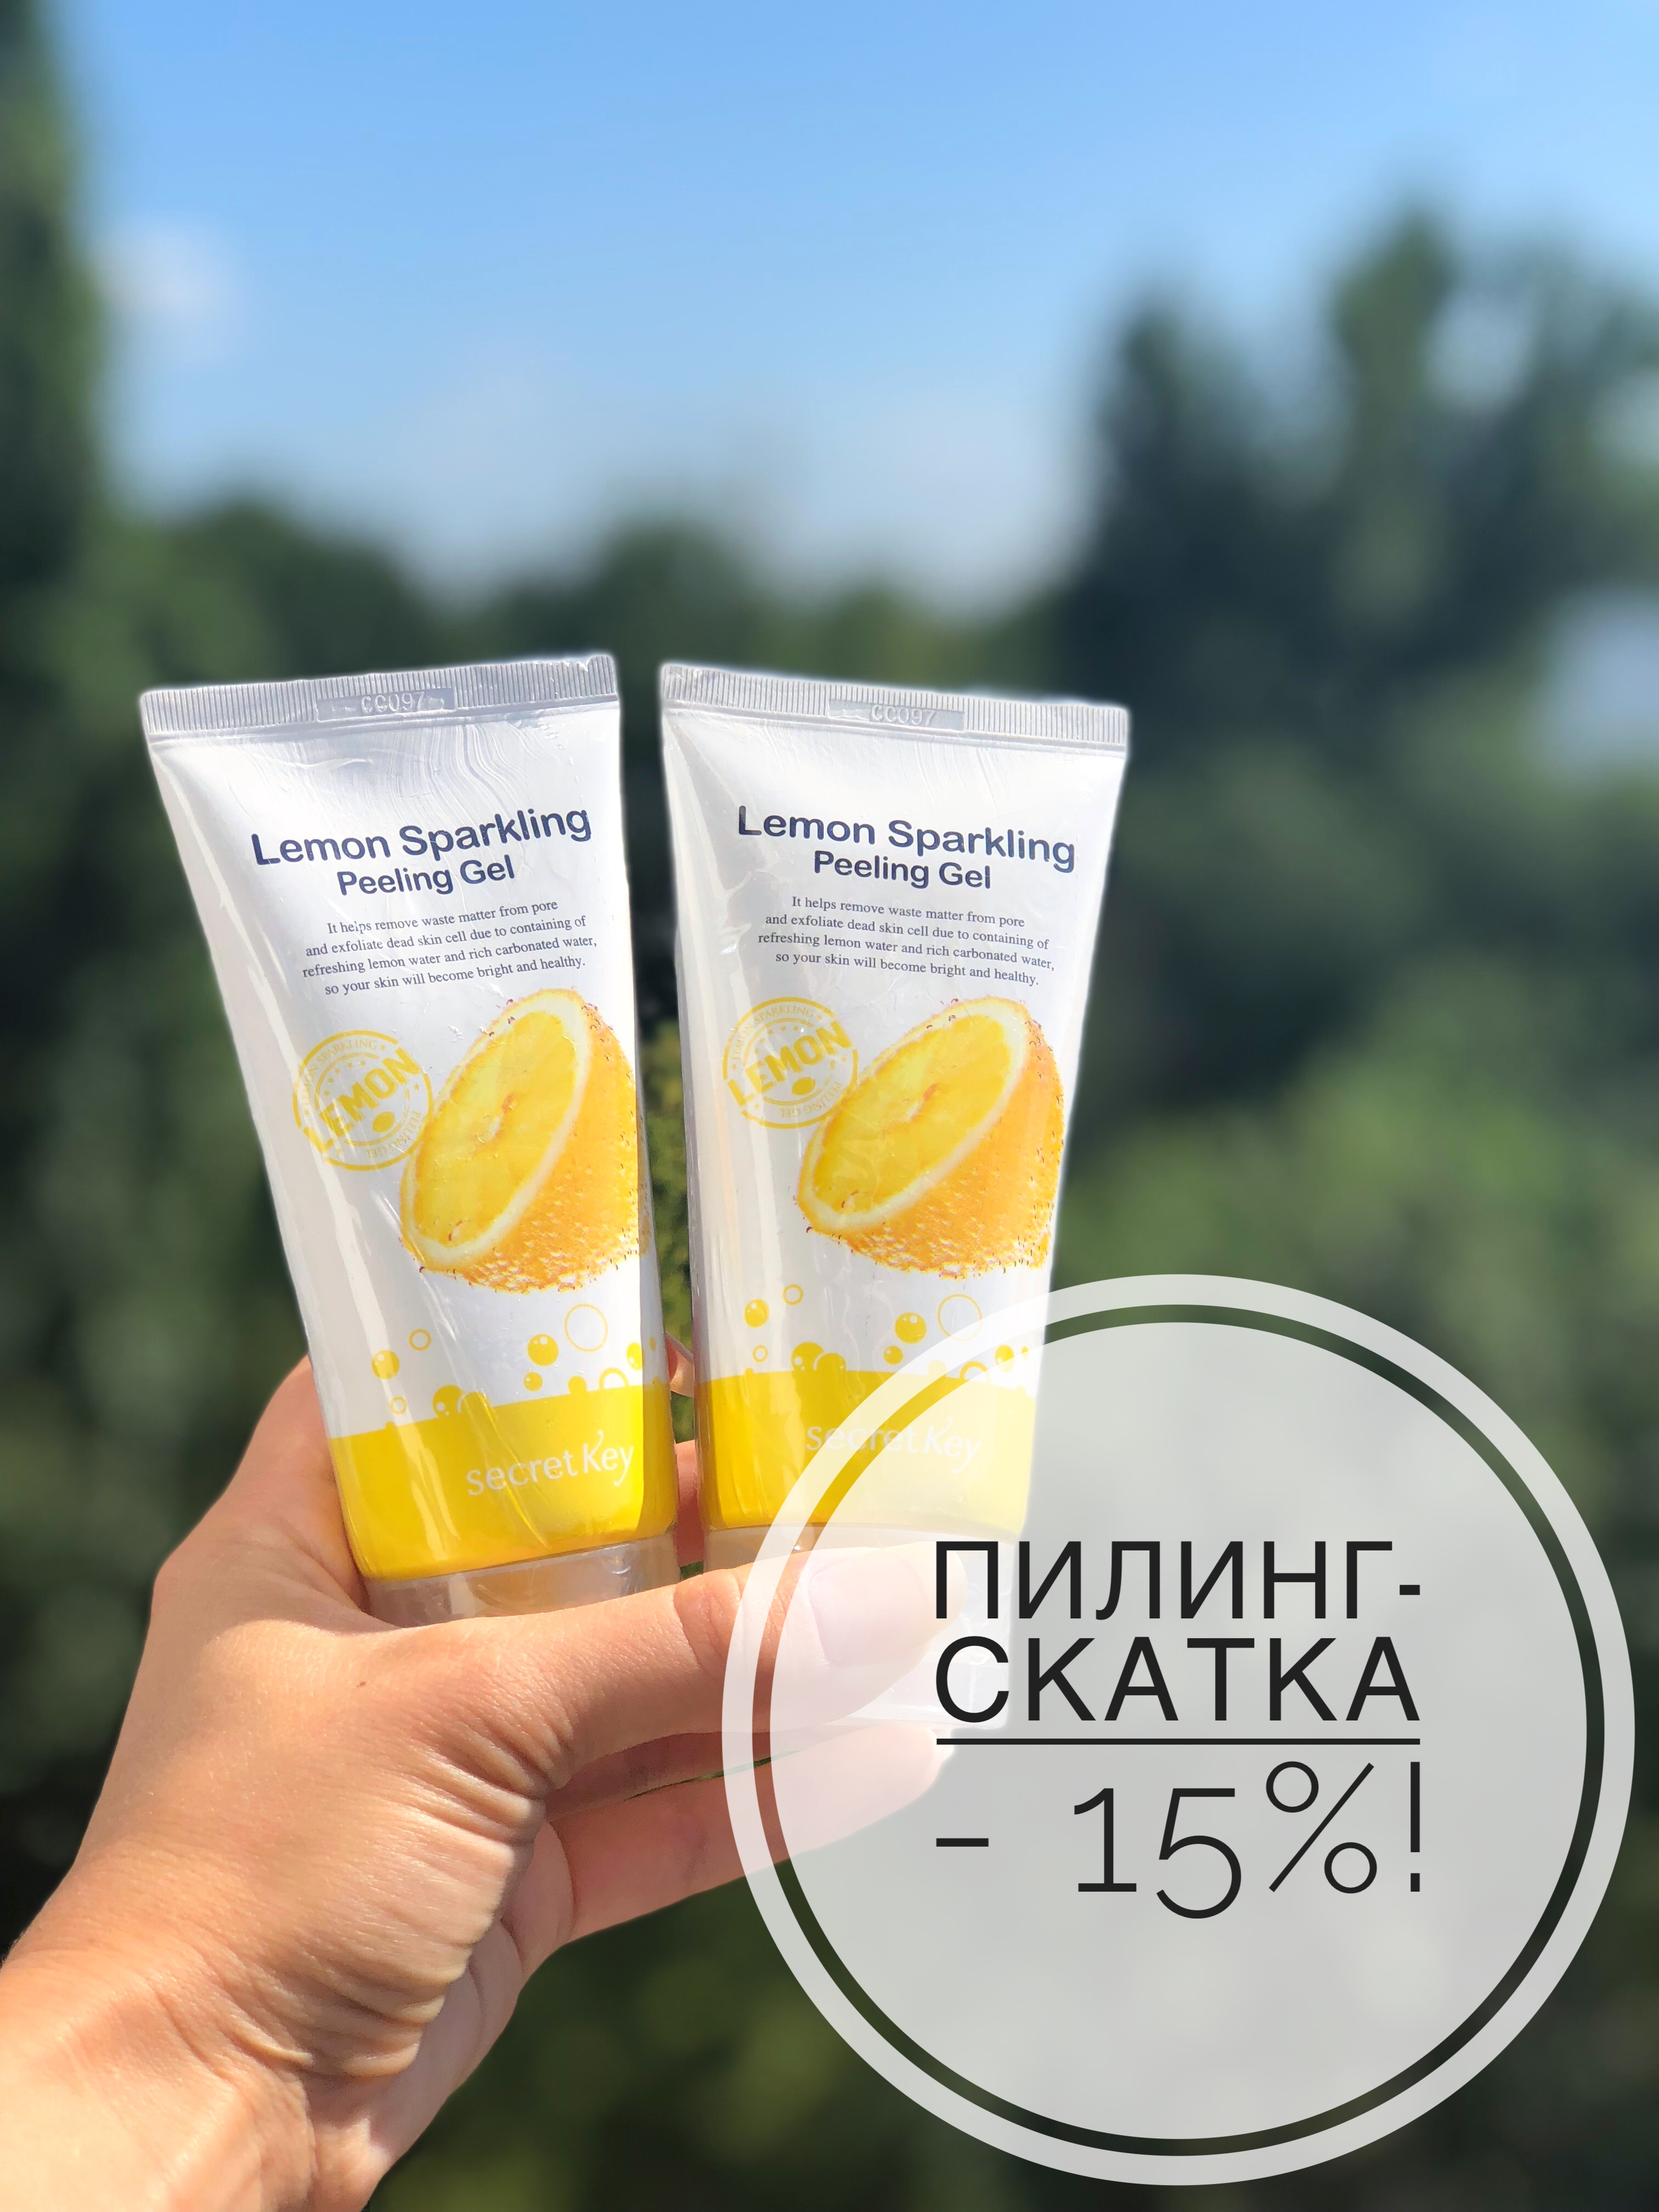 Secret Key, Lemon Sparkling <b>Peeling</b> Gel, 4.05 fl oz (120 ml)- кому ...